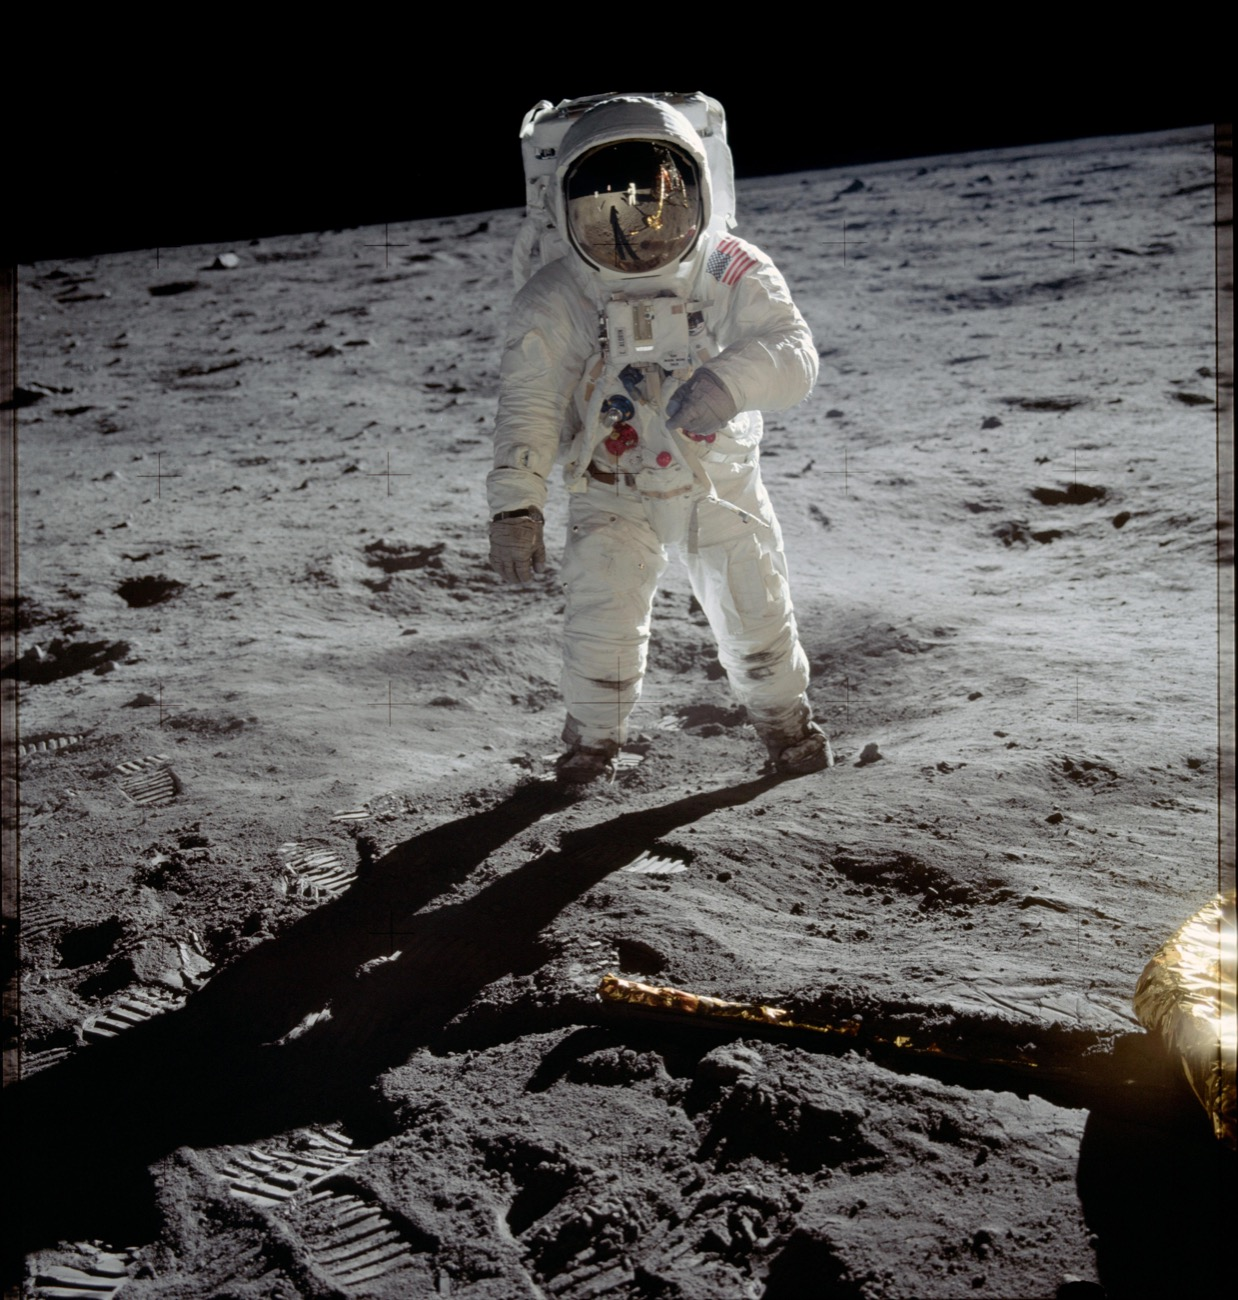 an astronaut stands on the moon